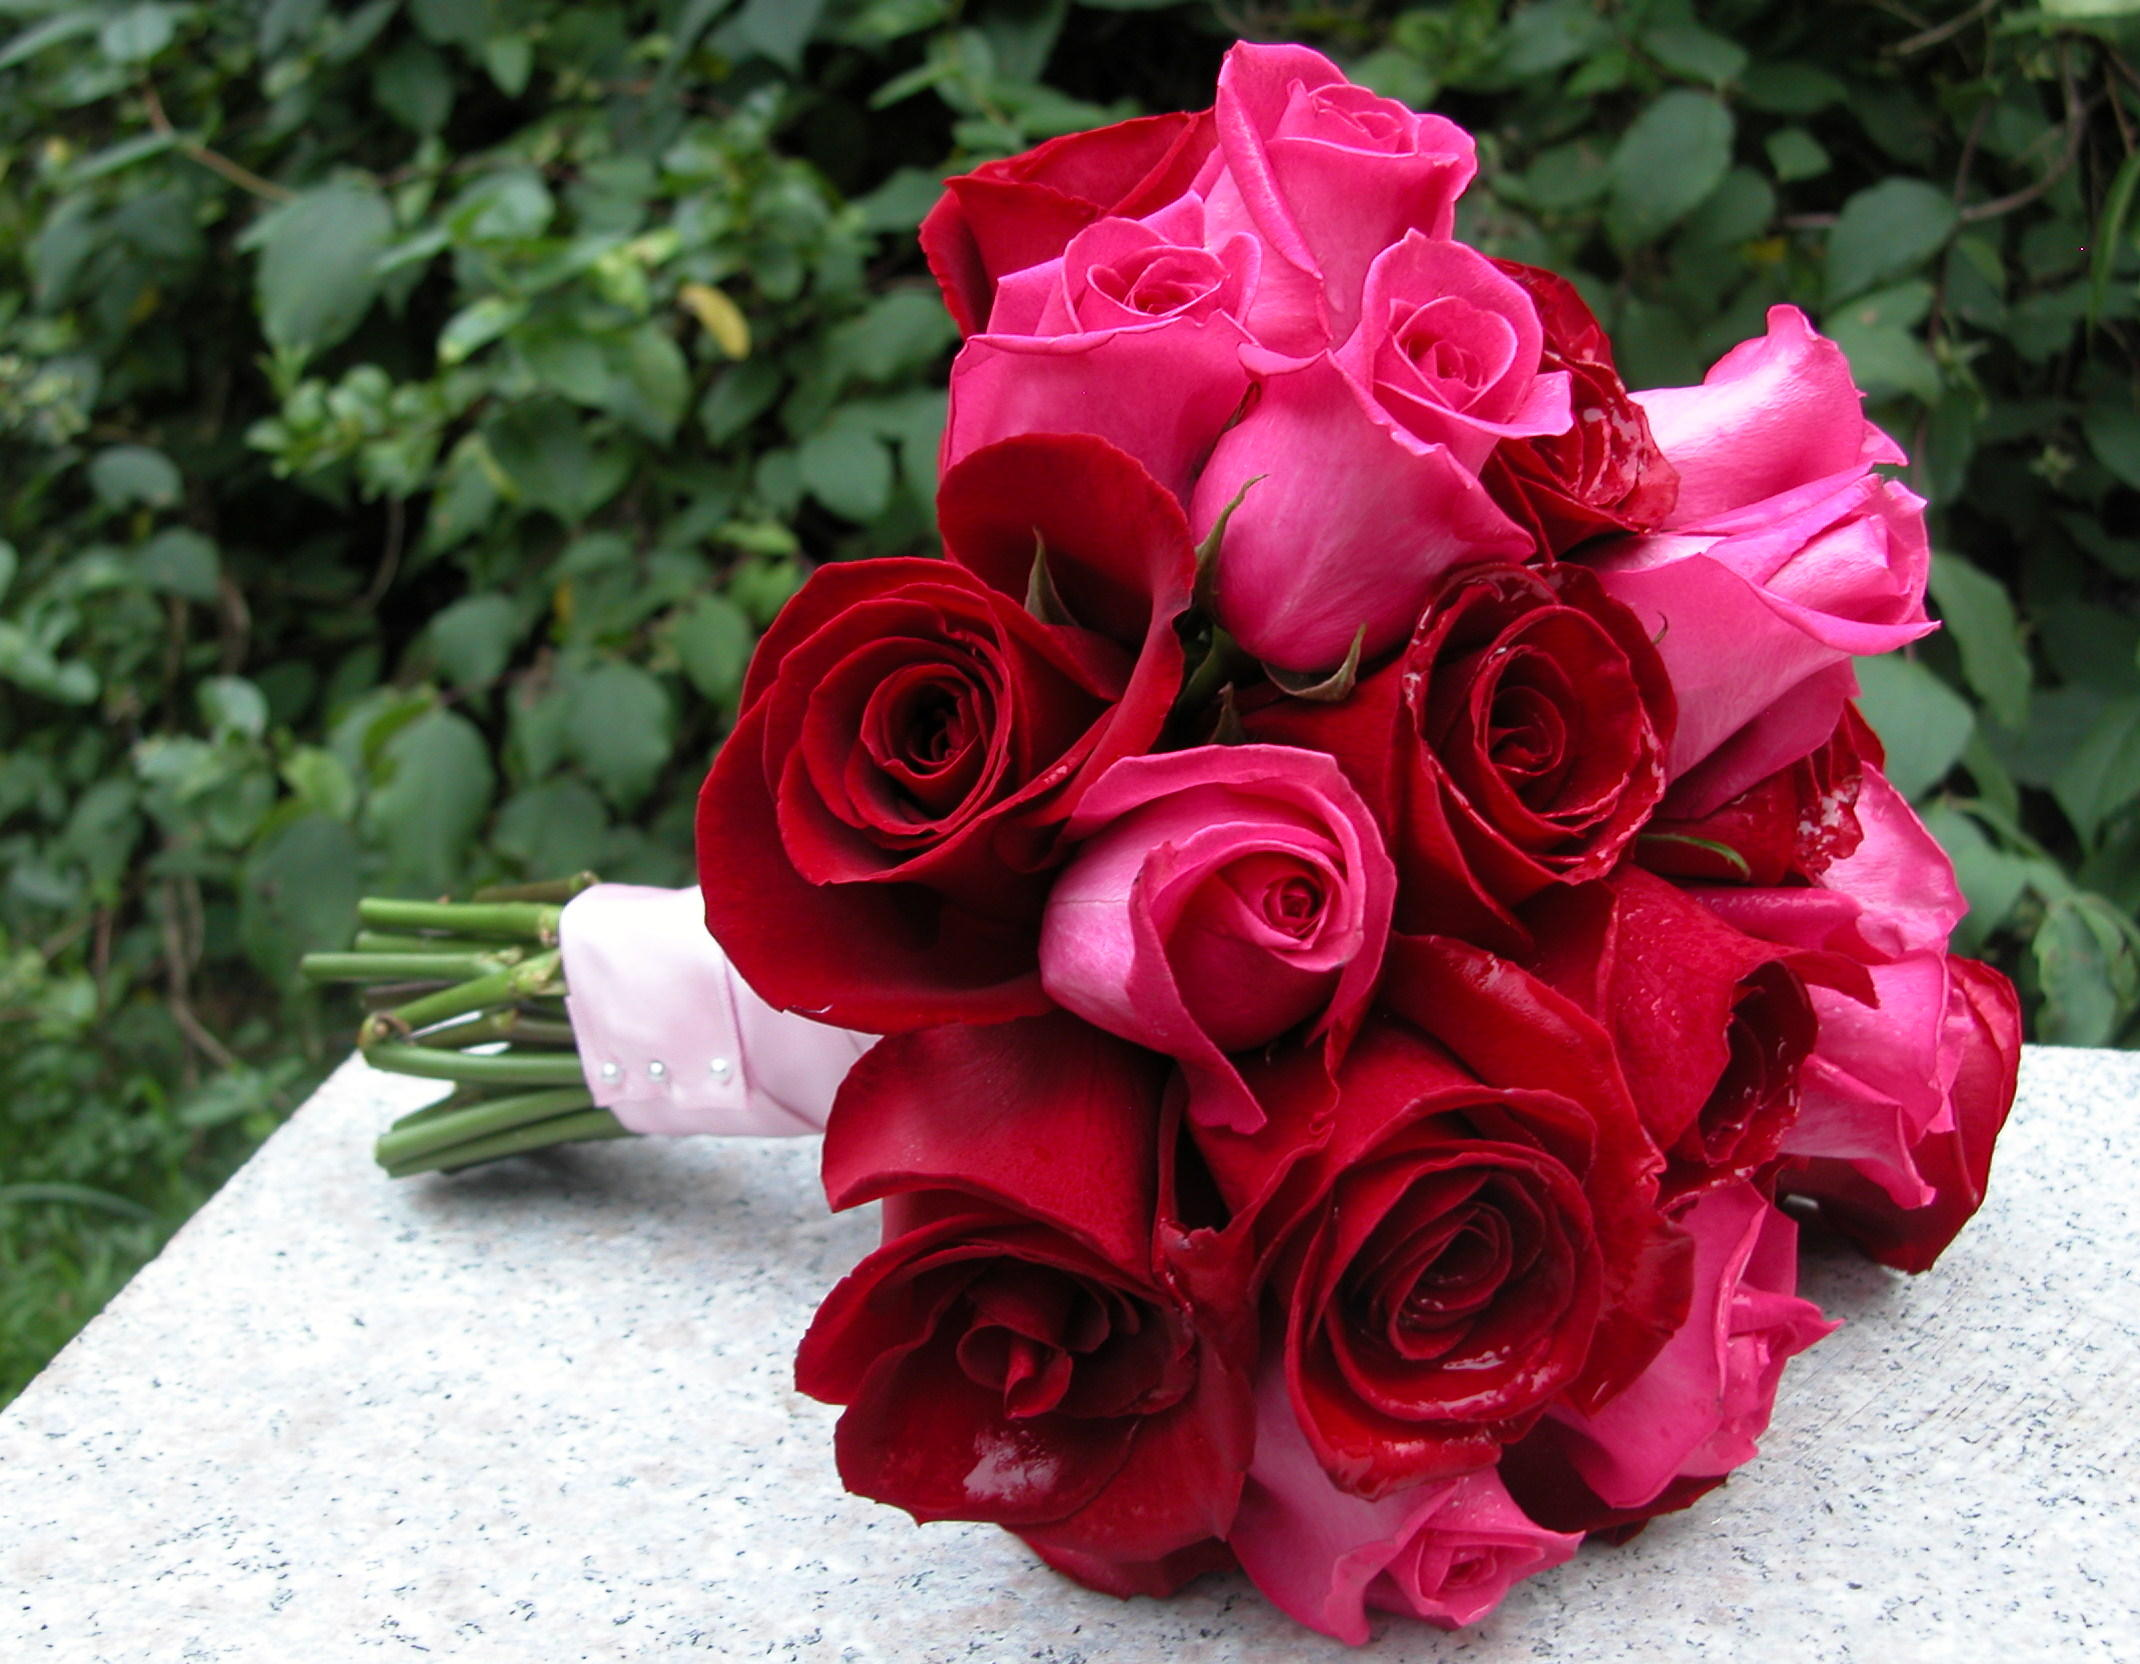 A basic rose diy wedding bouquet huffpost life 2015 04 04 1428163085 4447101 handtiedg izmirmasajfo